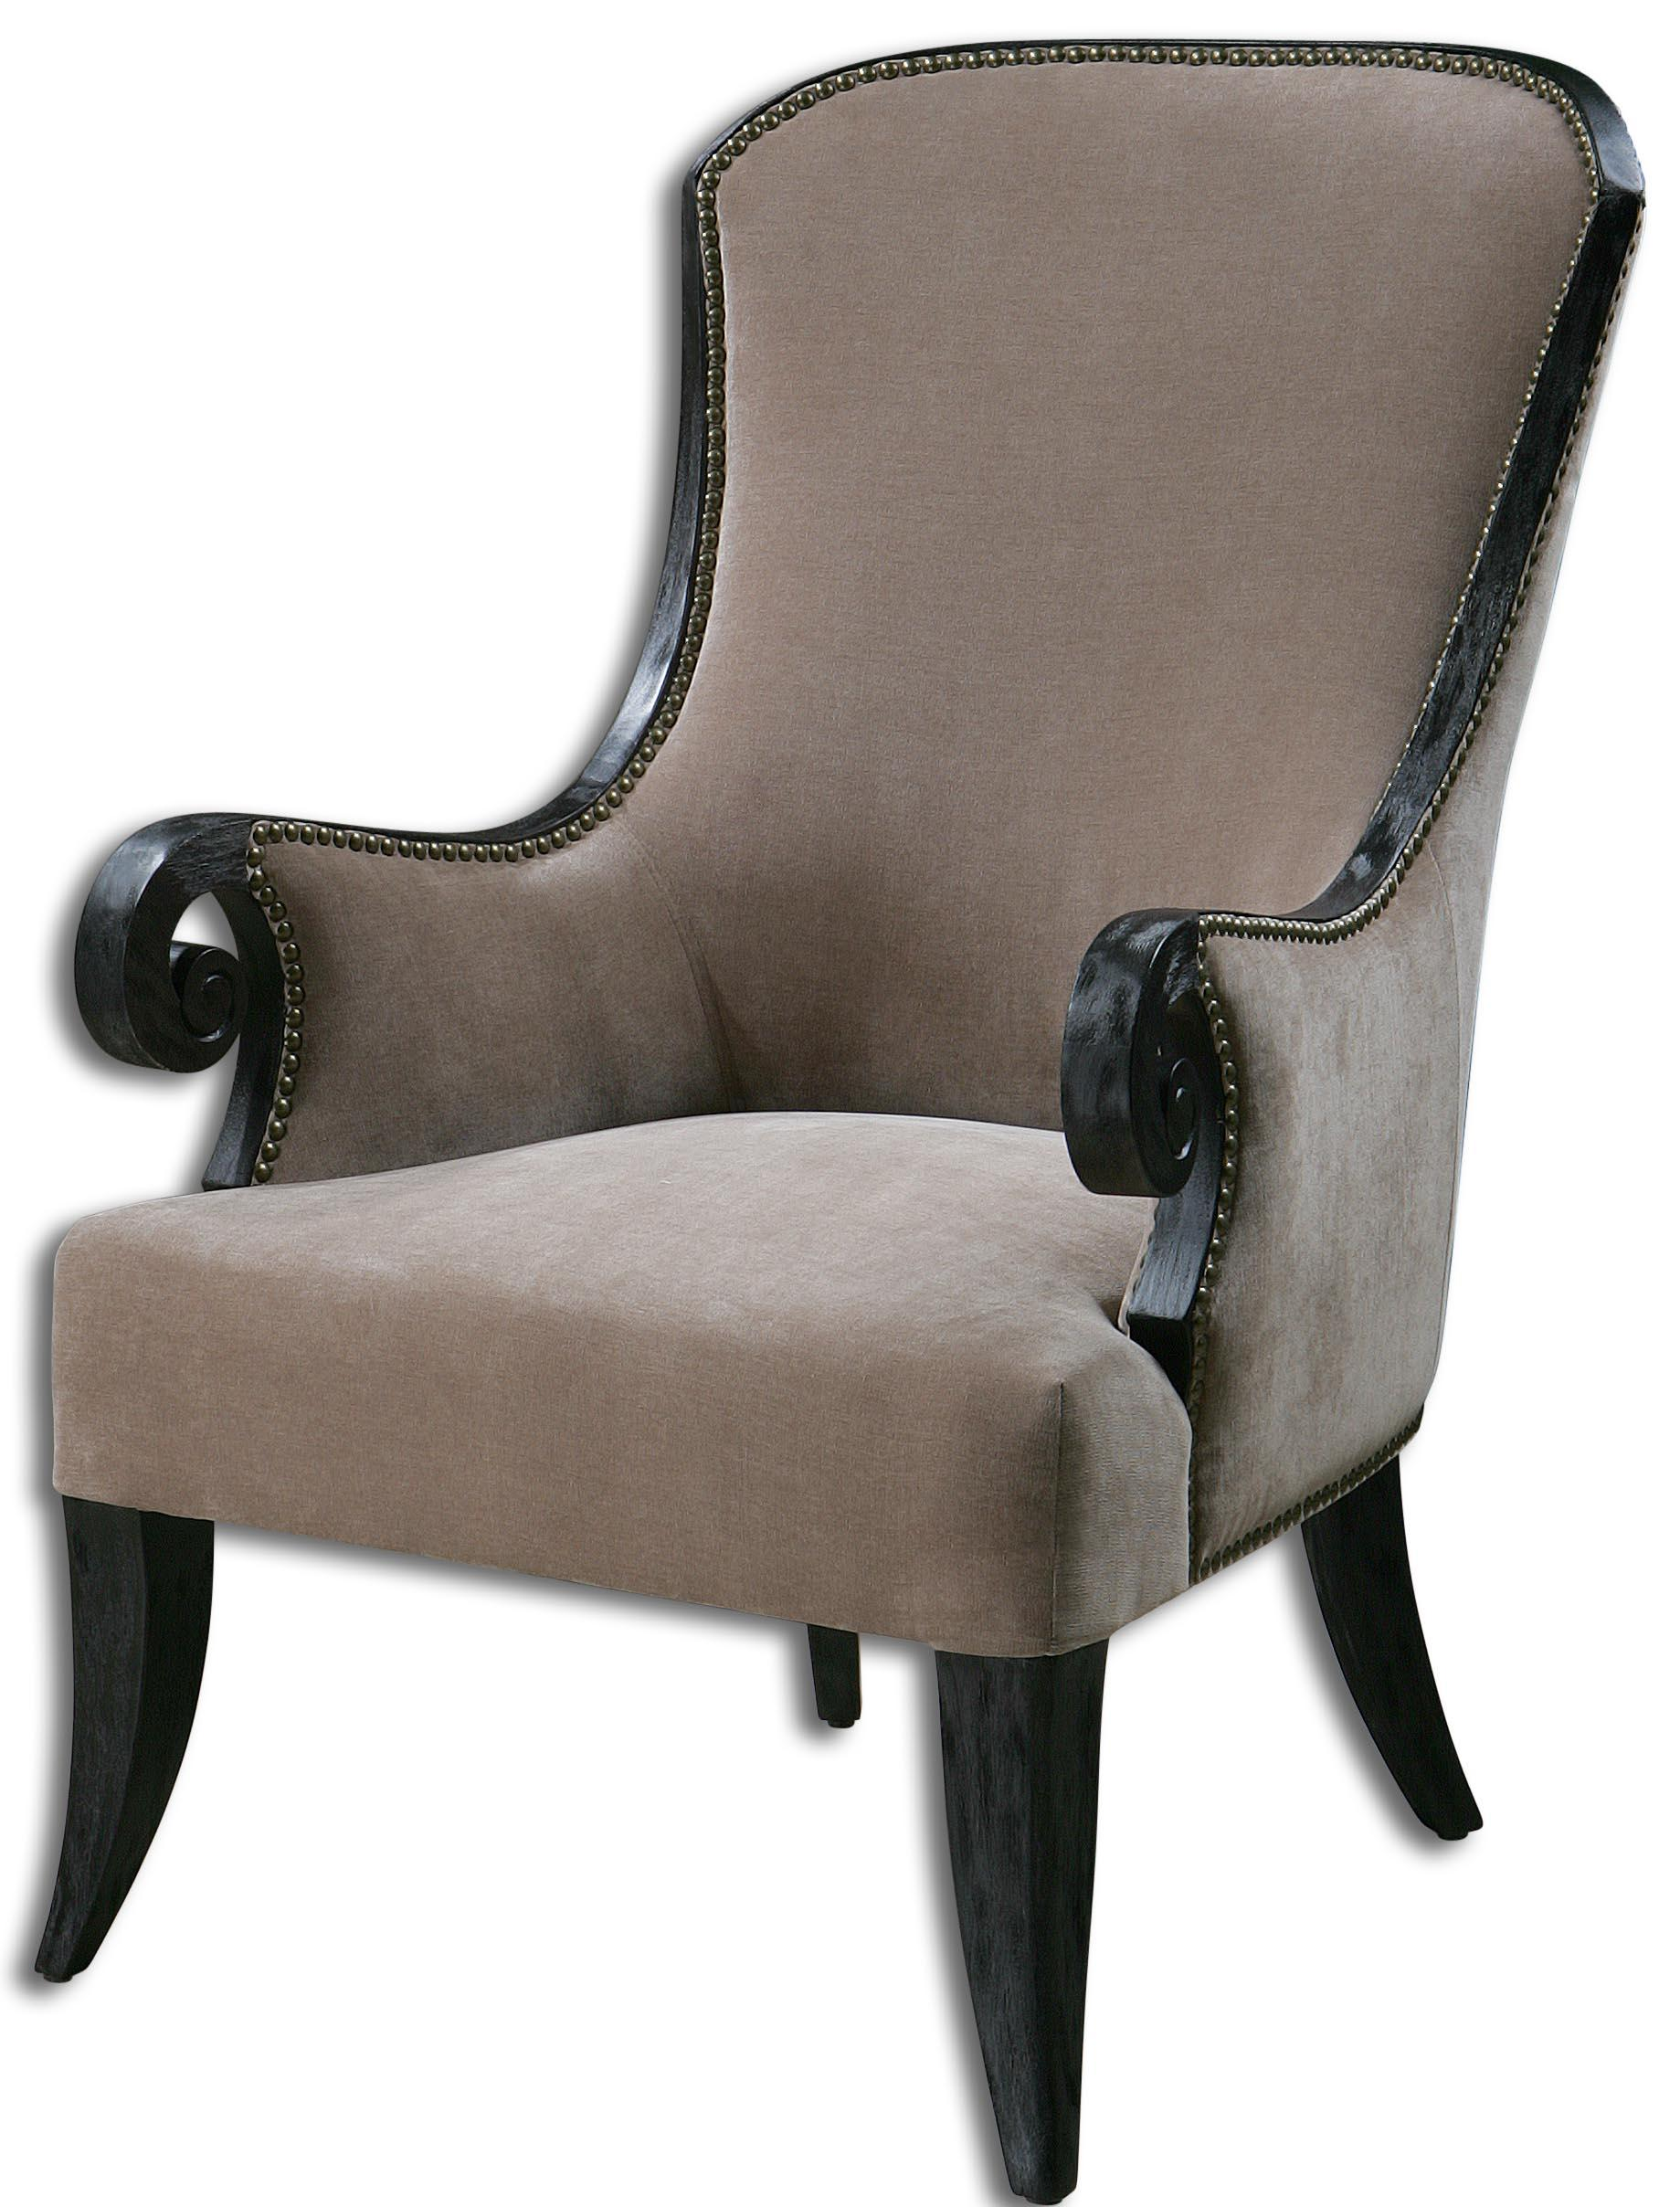 Accent Furniture - Accent Chairs Kandy Taupe ArmChair by Uttermost at Reid's Furniture